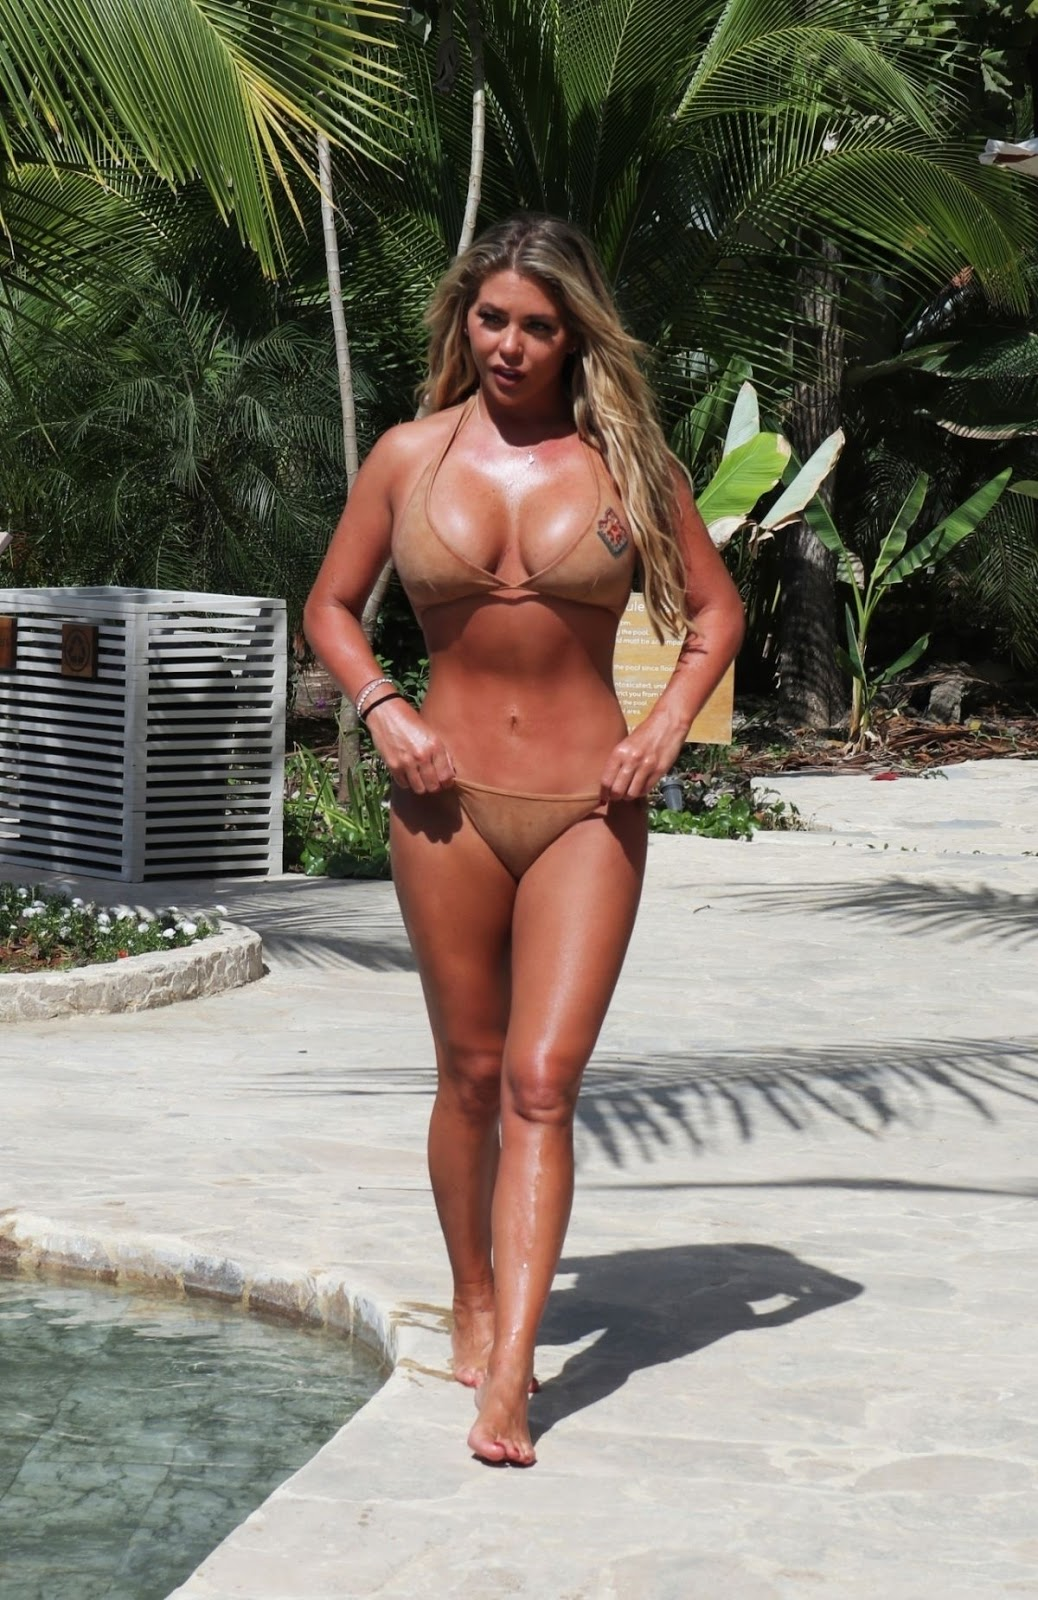 Bianca Gascoigne in Bikini at a Pool in Thailand - Fri Feb 07 2020